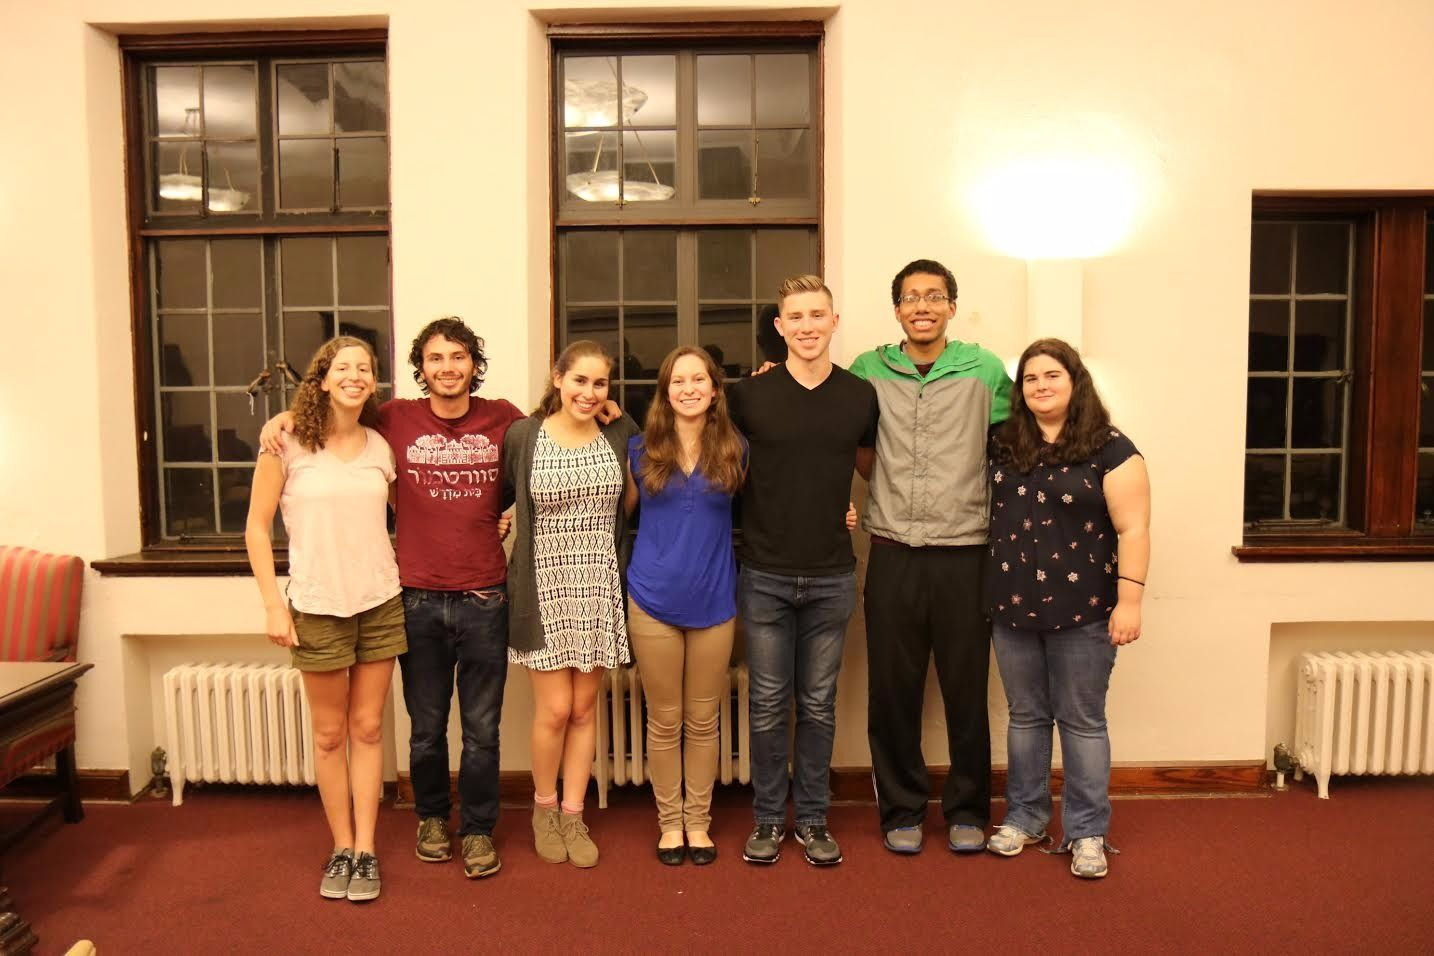 Members of the Swarthmore Kehilah, the Jewish student organization and Open Hillel at Swarthmore College.